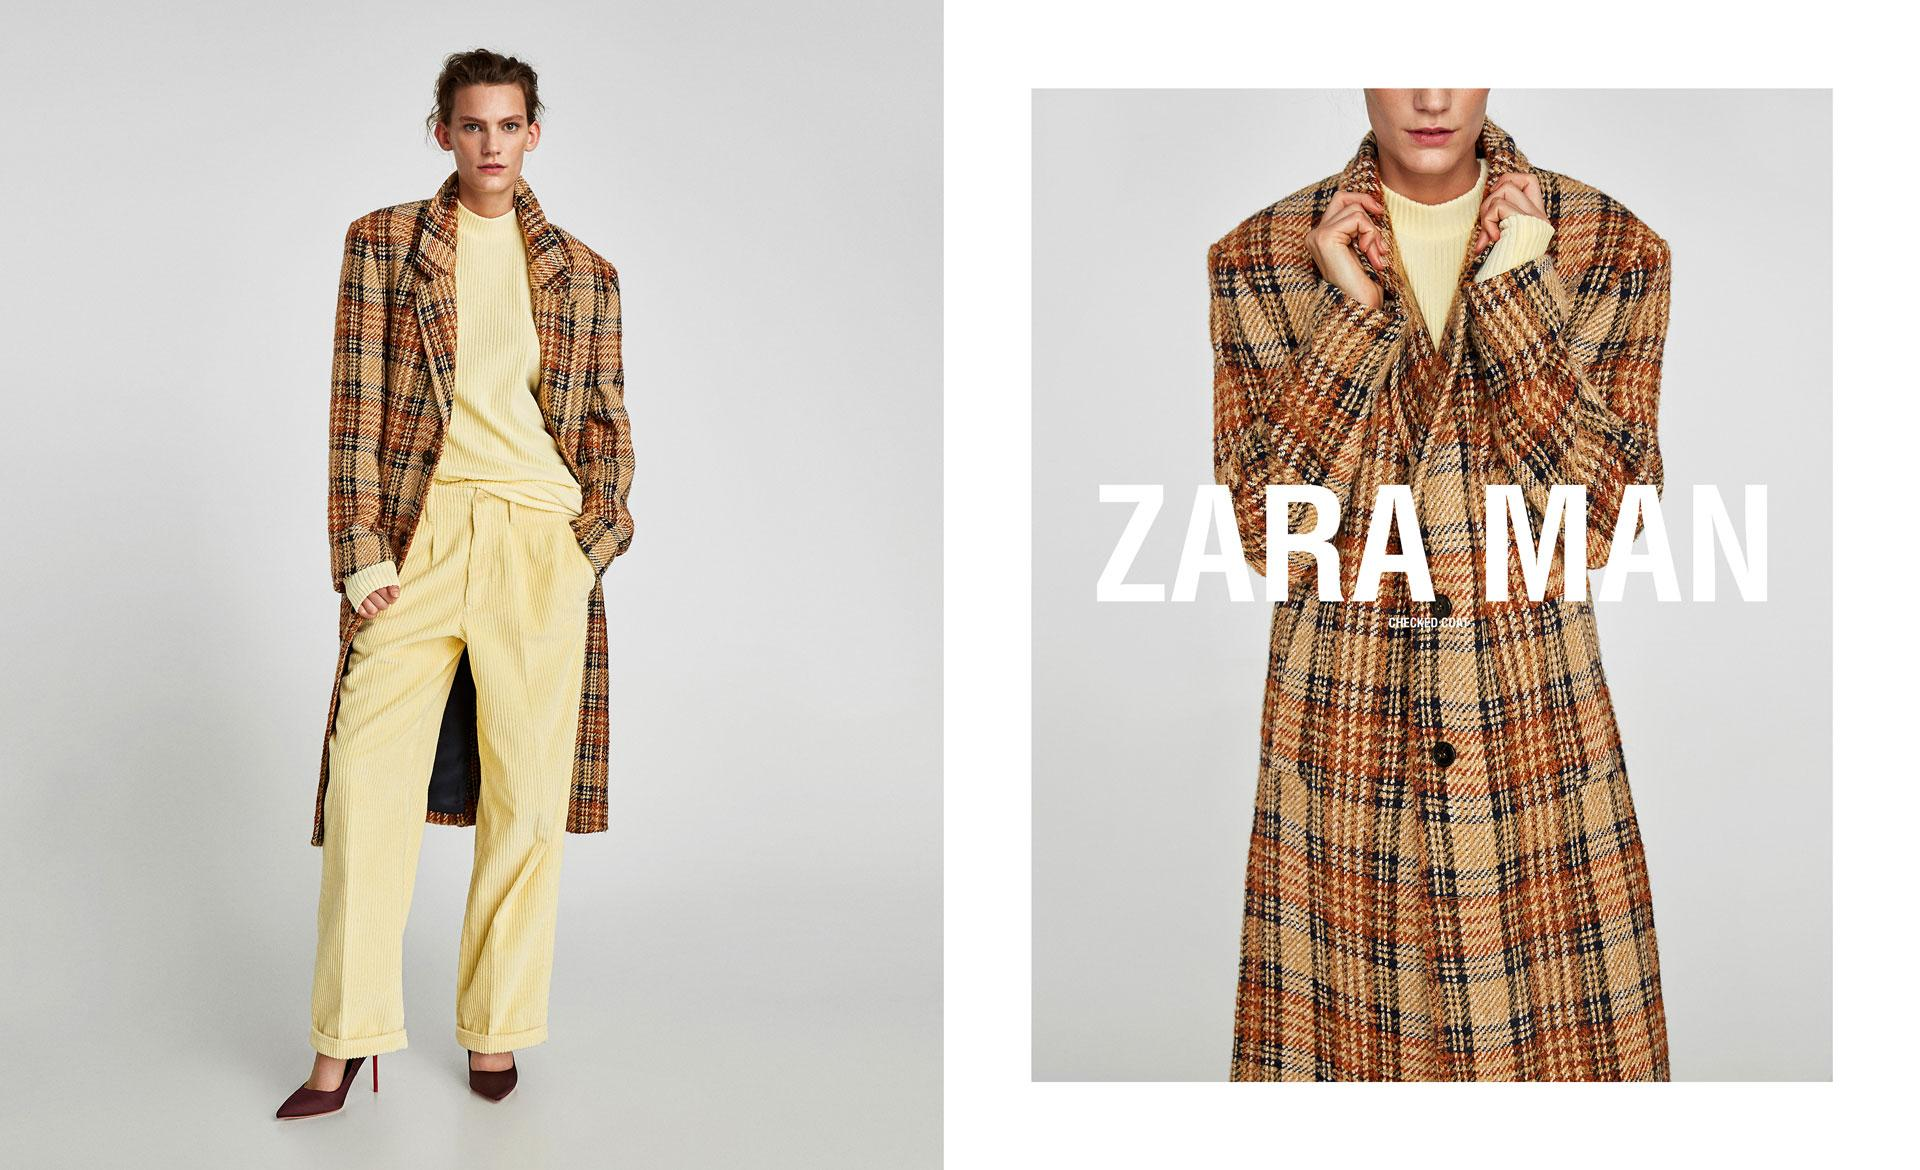 90437bf3 Zara alludes to going gender-neutral, with men and women modelling ...